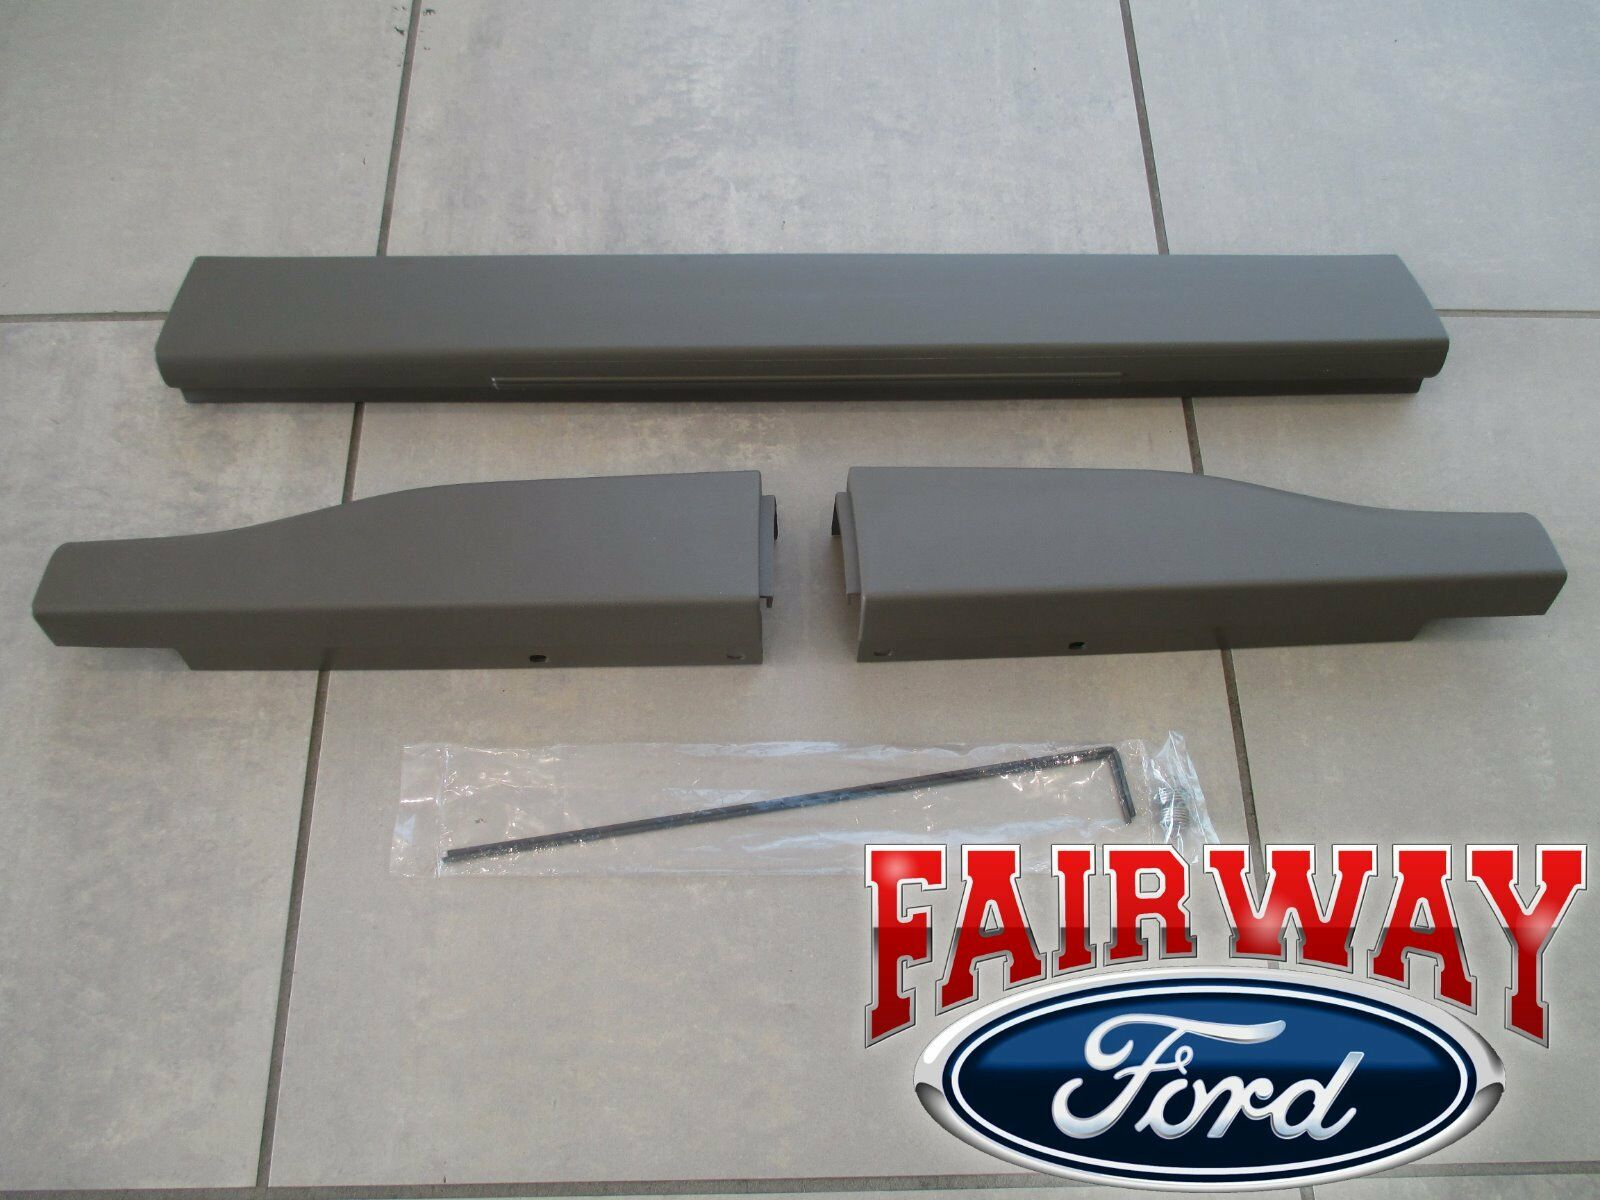 Ford F250 F350 Super Duty Tailgate Moulding Kit Set with Flexible Step New OEM